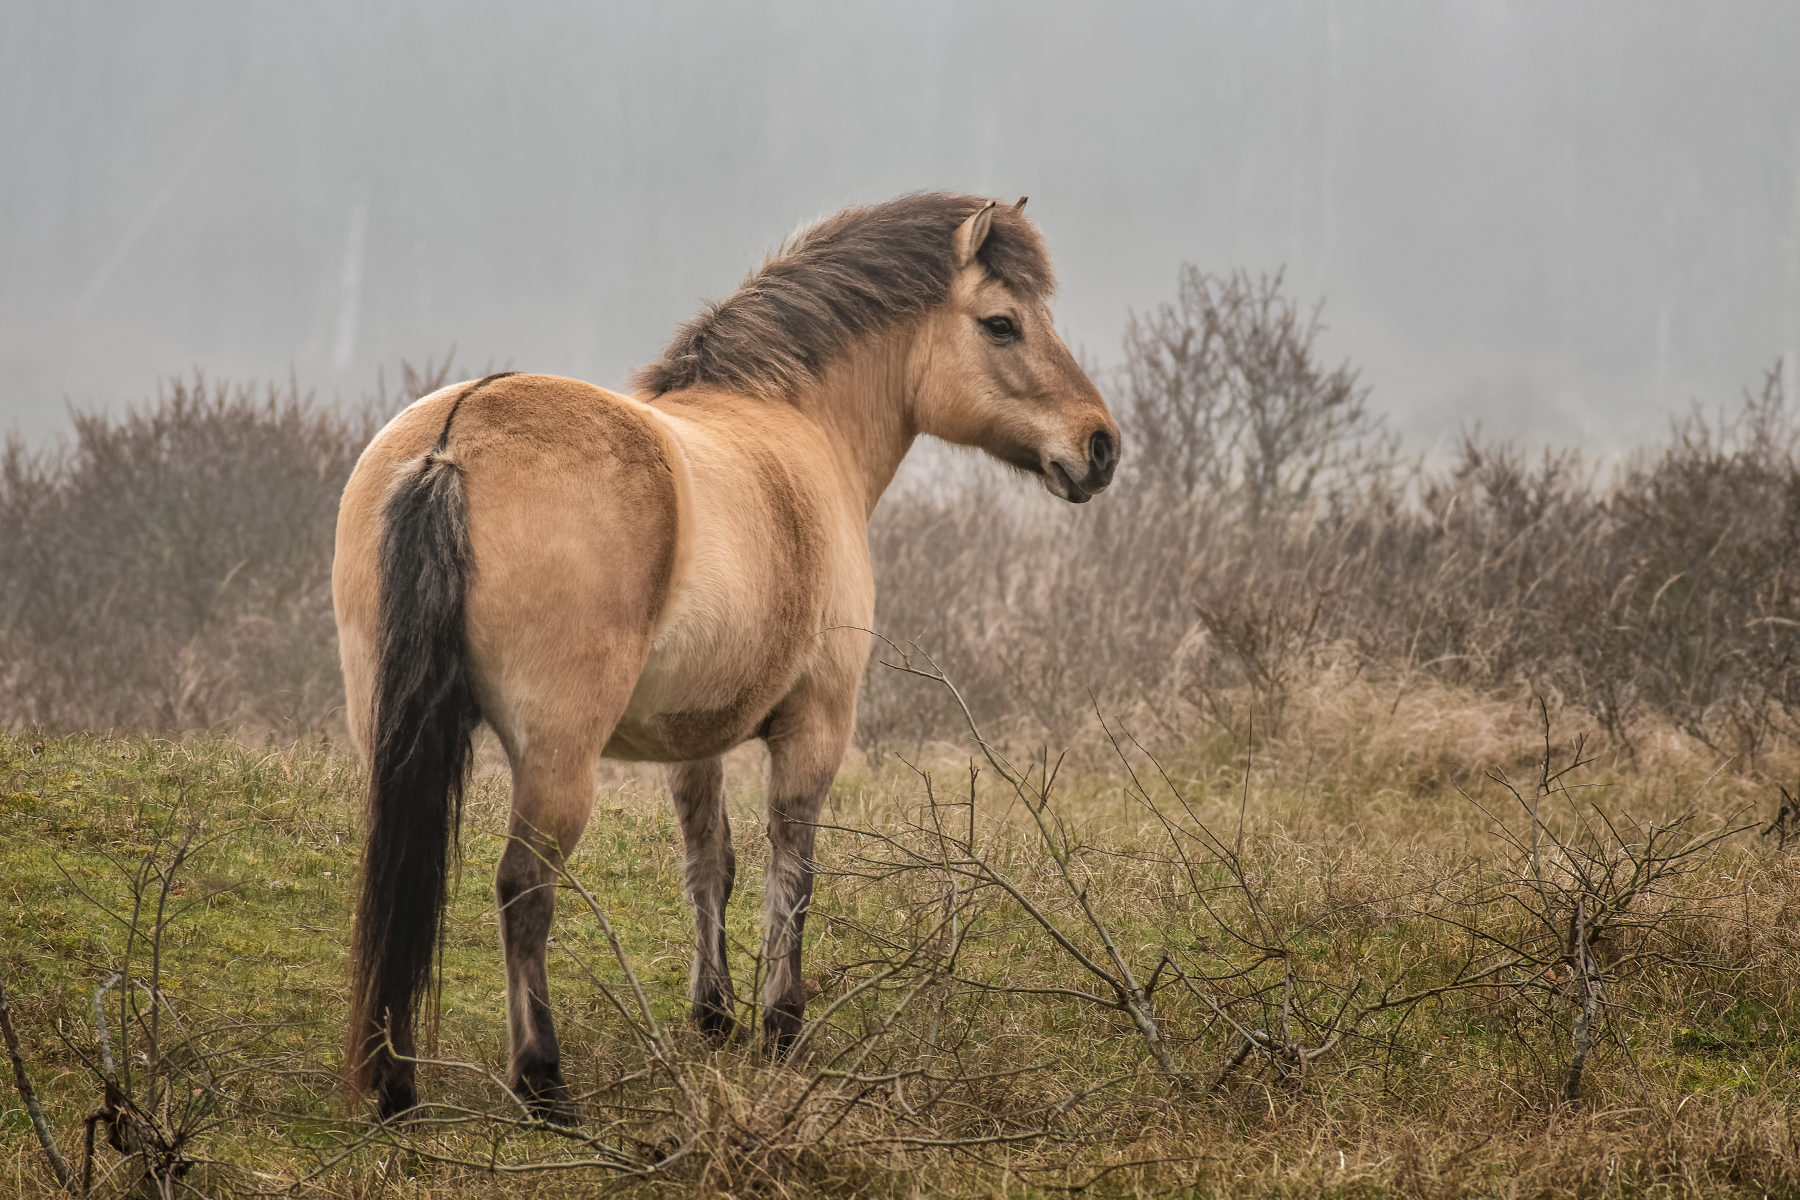 dun horse looking out over a misty field